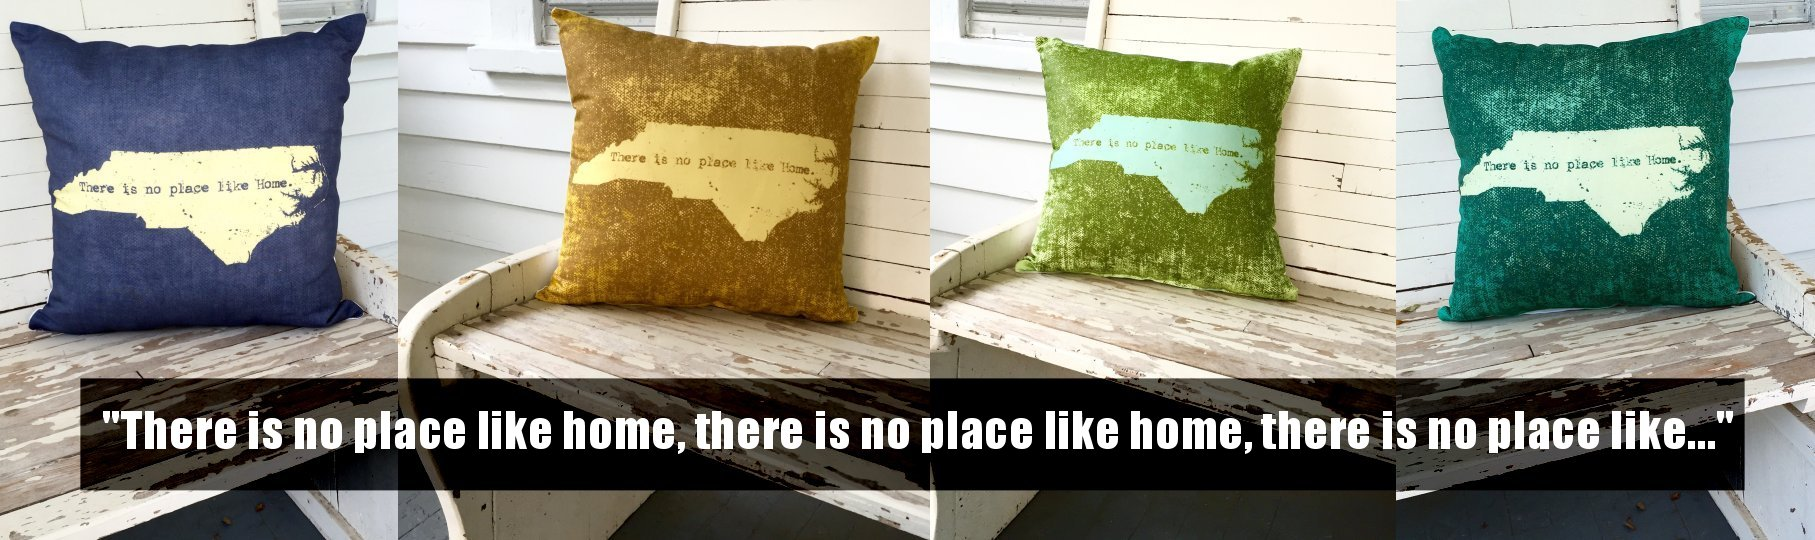 'There is no place like home, there is no place like home, there is no place like home...' North Carolina pillows. Handmade.